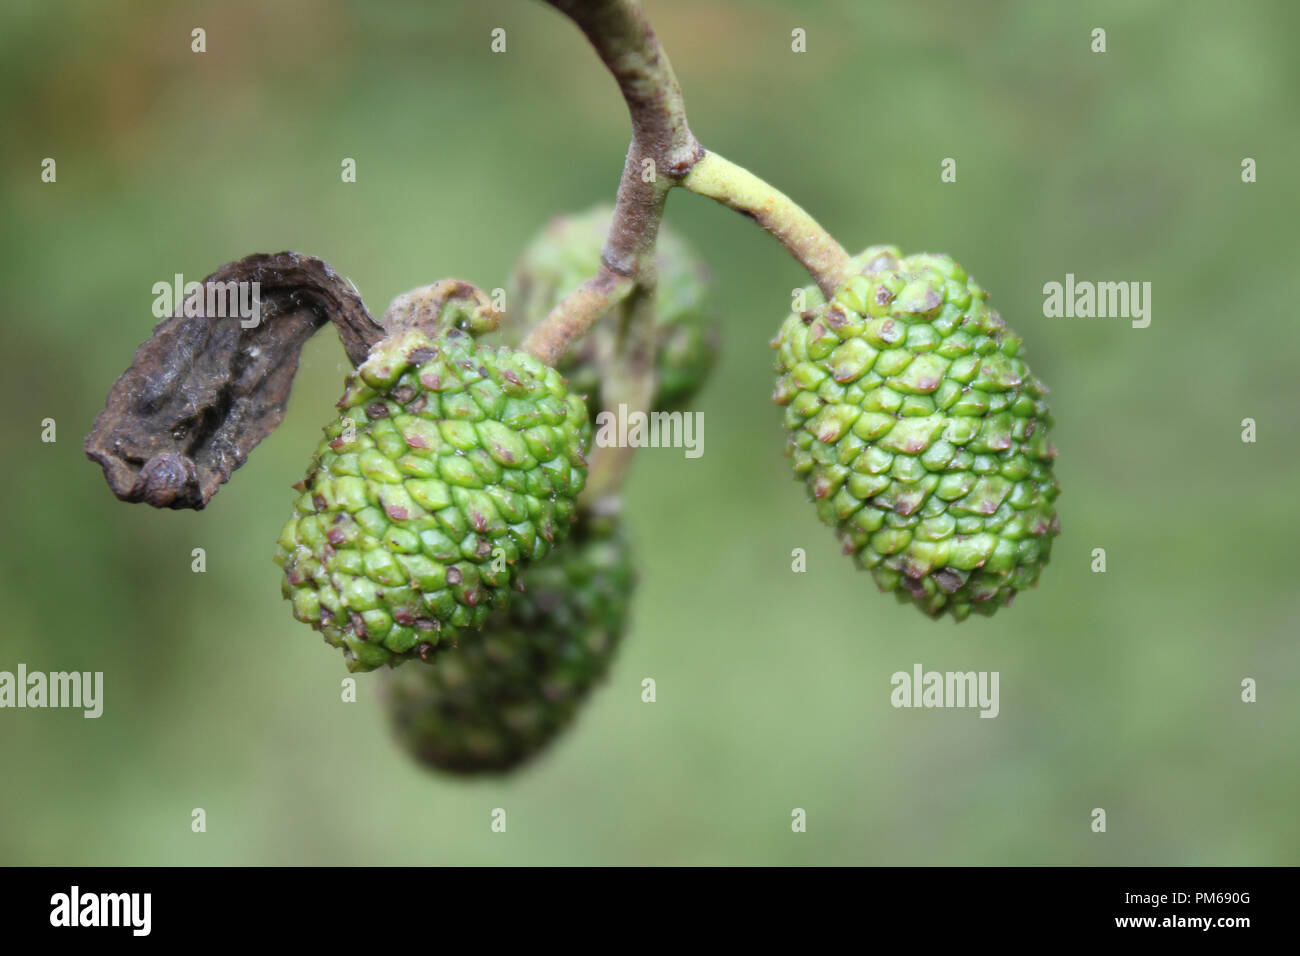 Alder tongue gall caused by Taphrina alni - a fungal plant pathogen - Stock Image